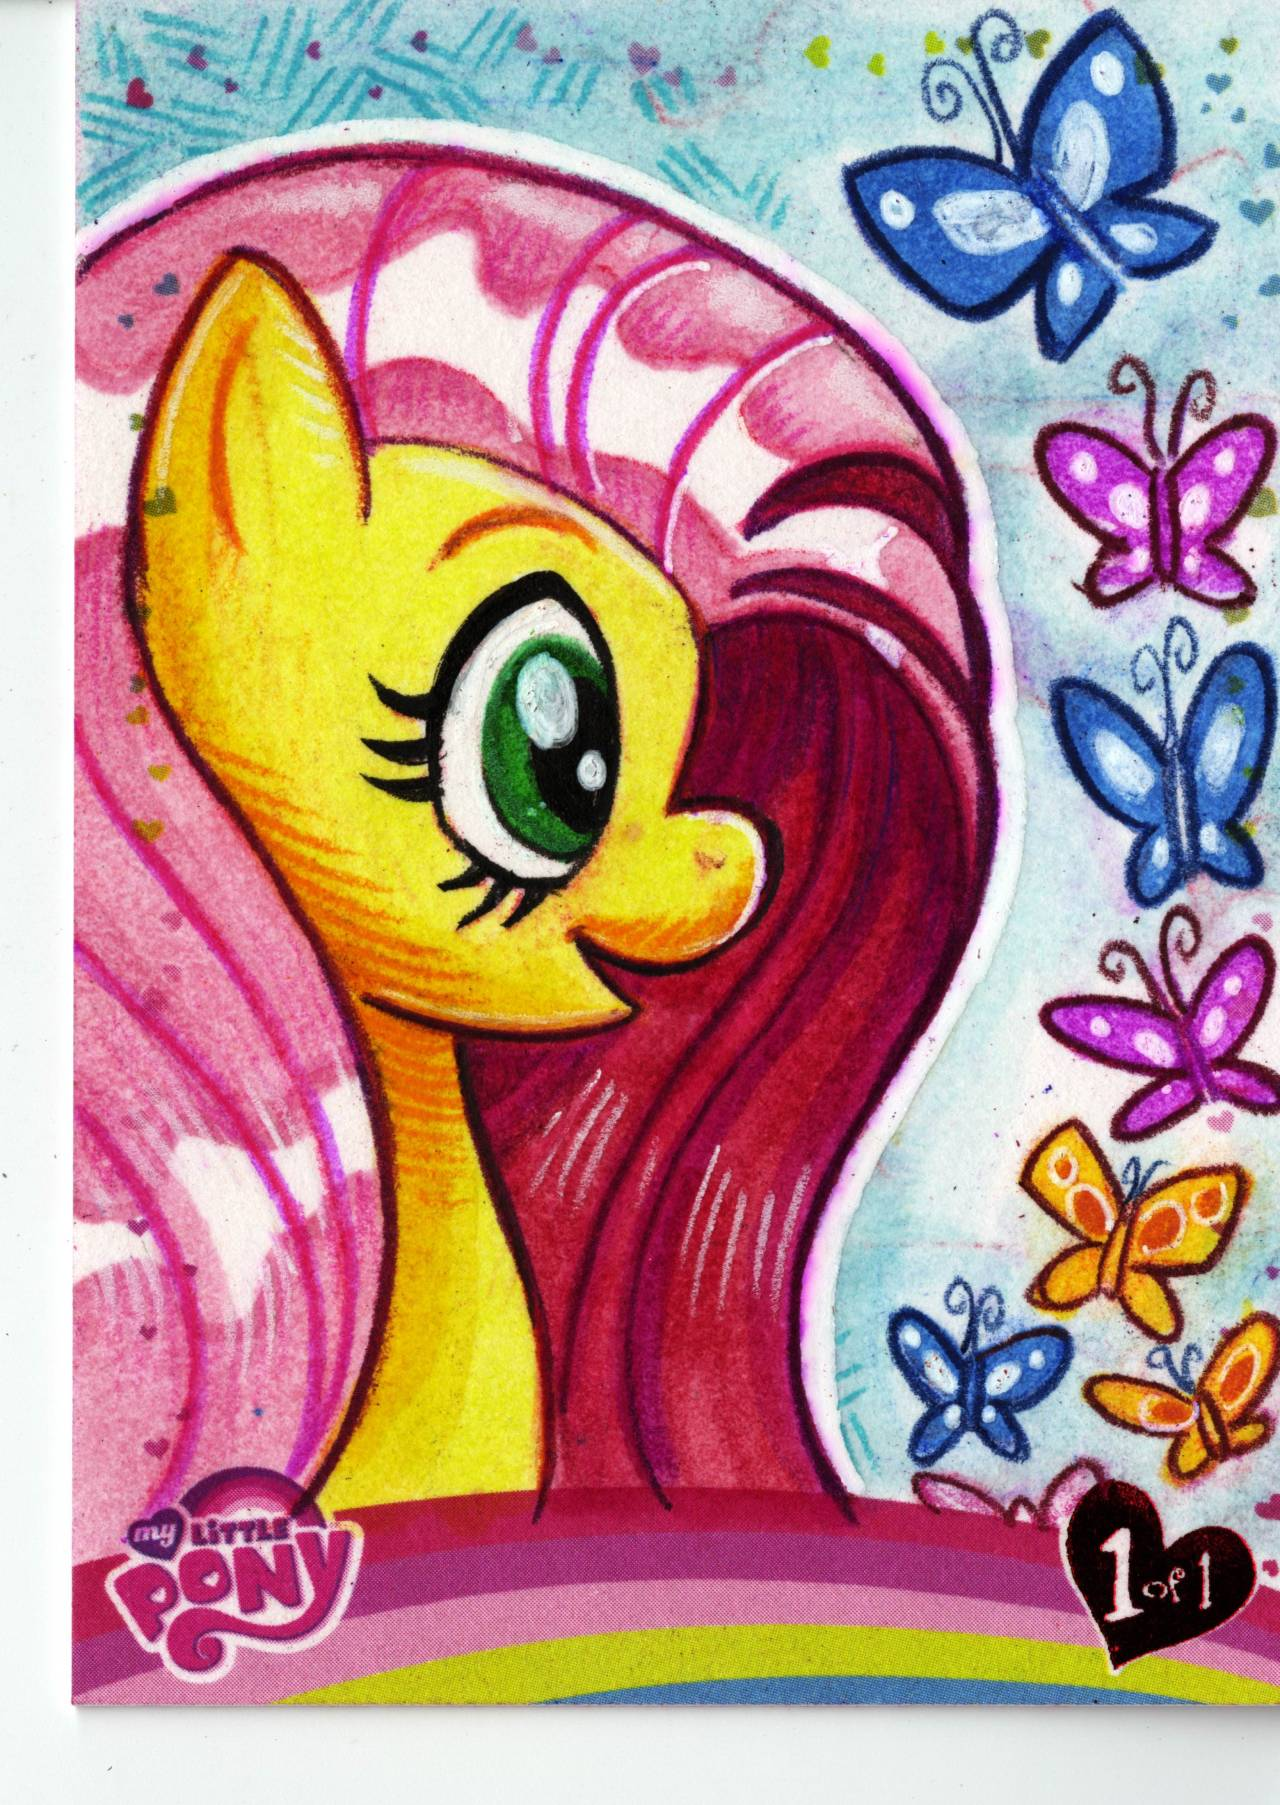 IDW Limited's My Little Pony Fluttershy Red